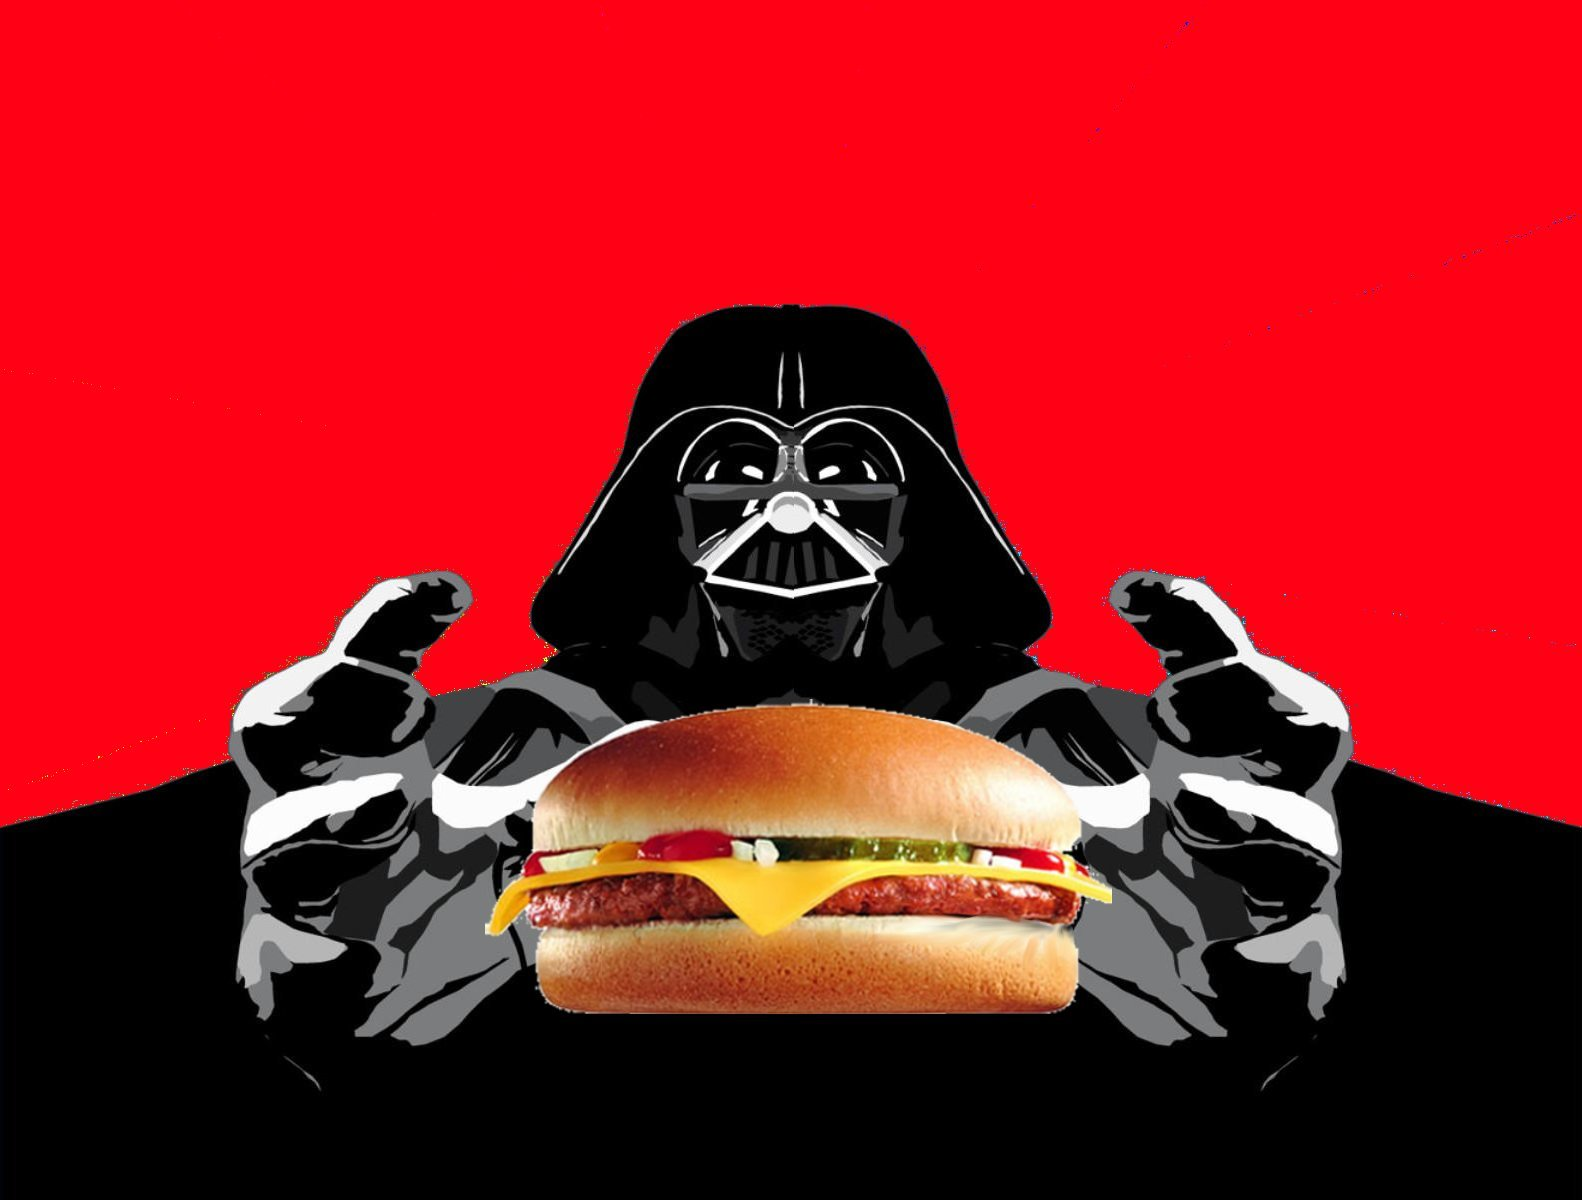 darth Vader mc macdonald HD Wallpaper